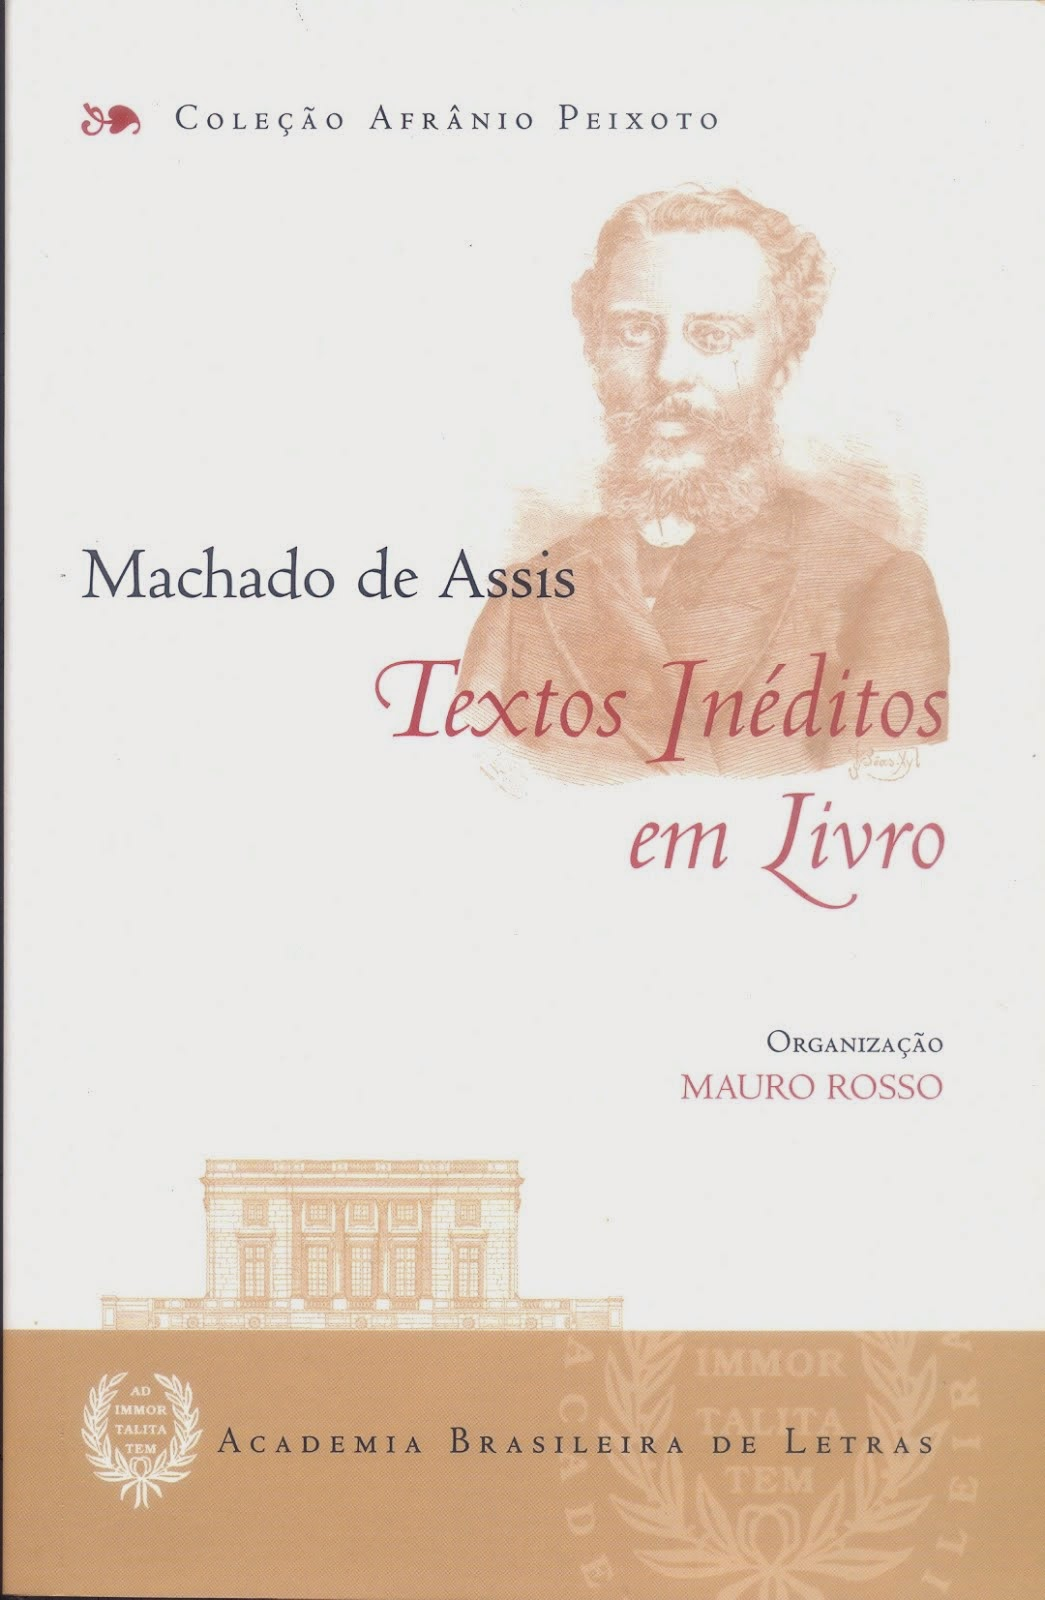 Inéditos de Machado de Assis